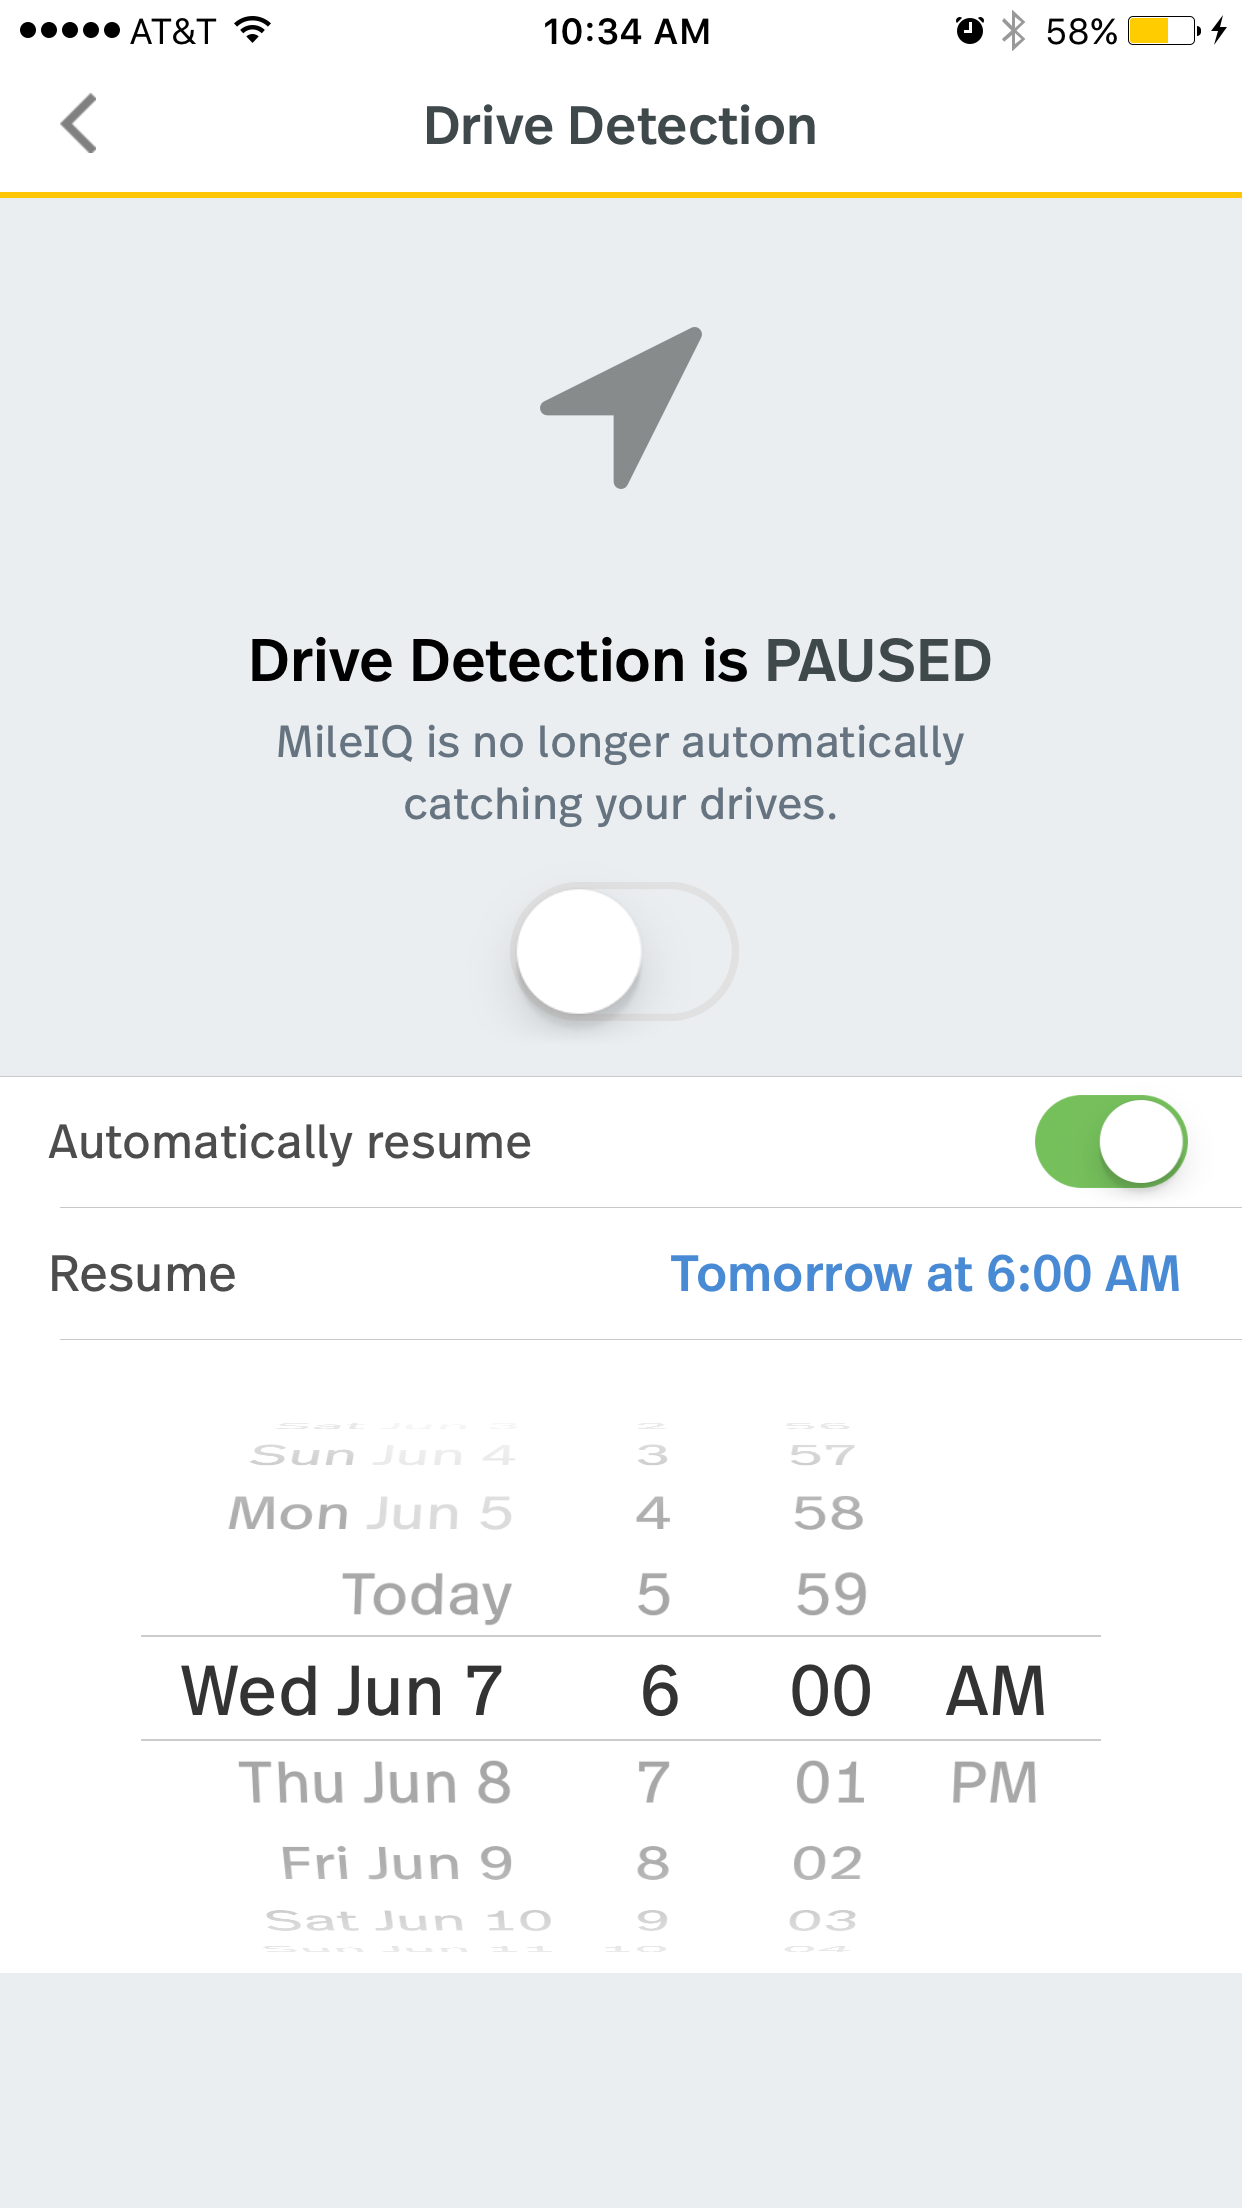 This image shows the drive detection page on the mobile app, showing the automatically resume toggle switched to green and a calendar selection to set a date to auto resume drive detection.